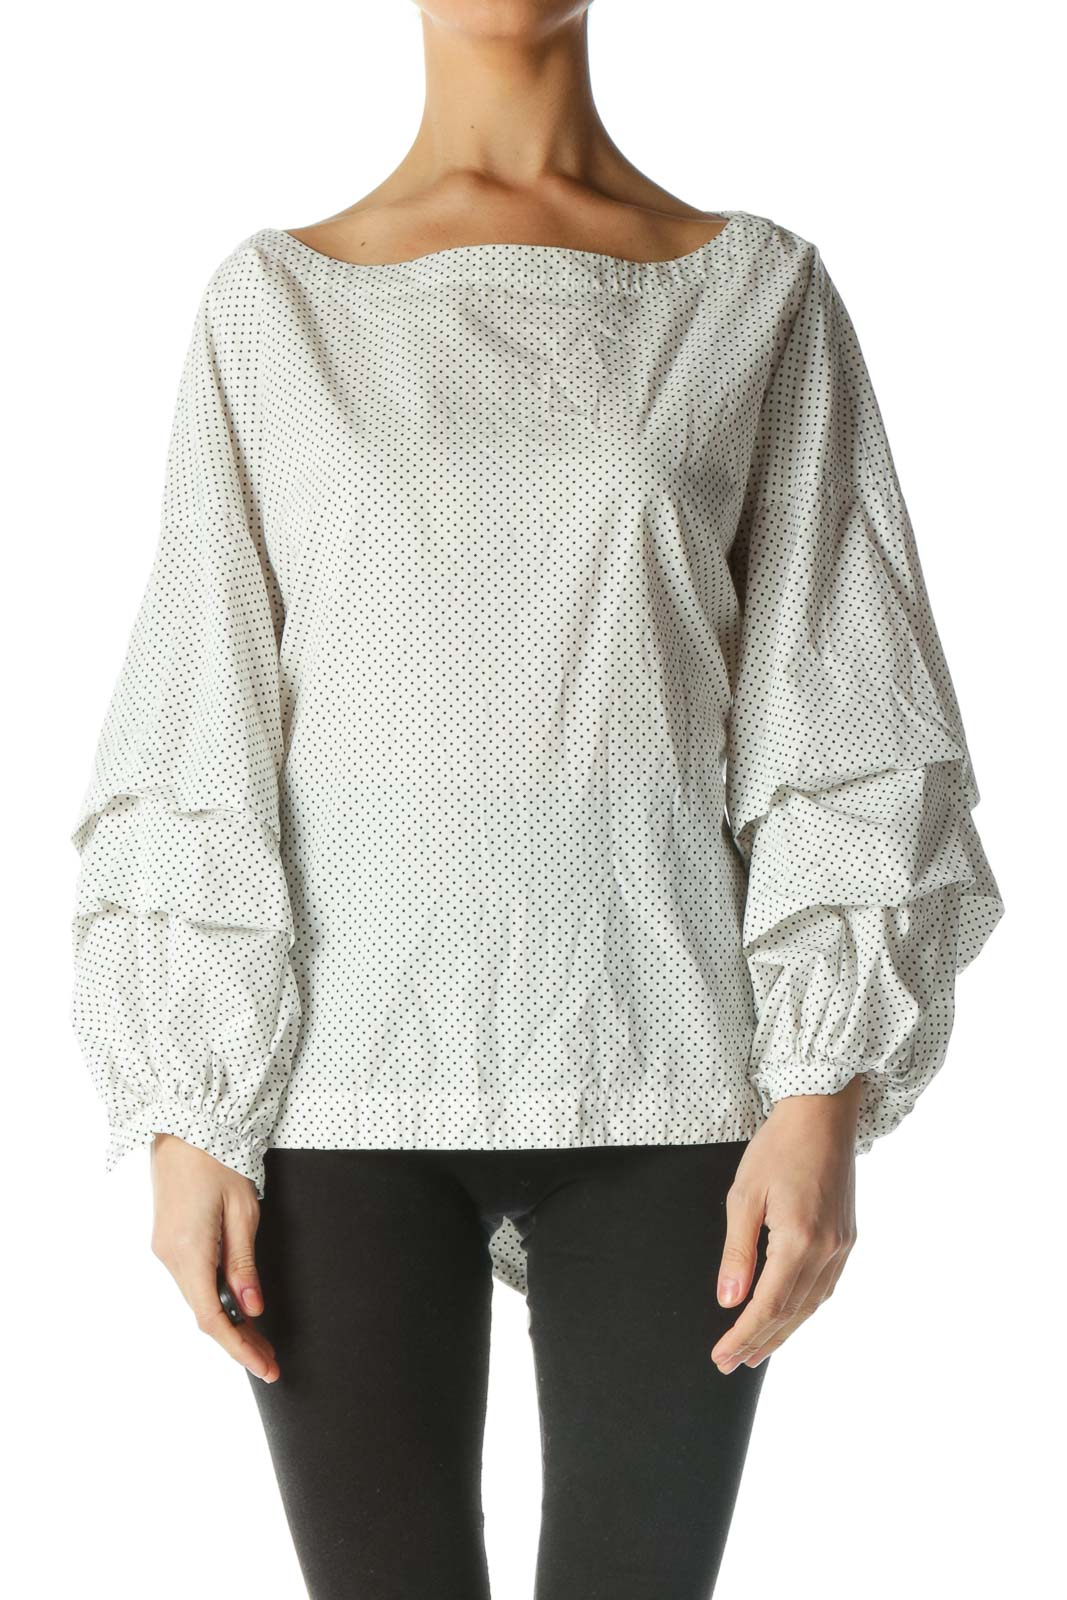 Black and White Polka-Dot Bell Sleeve Shirt Front